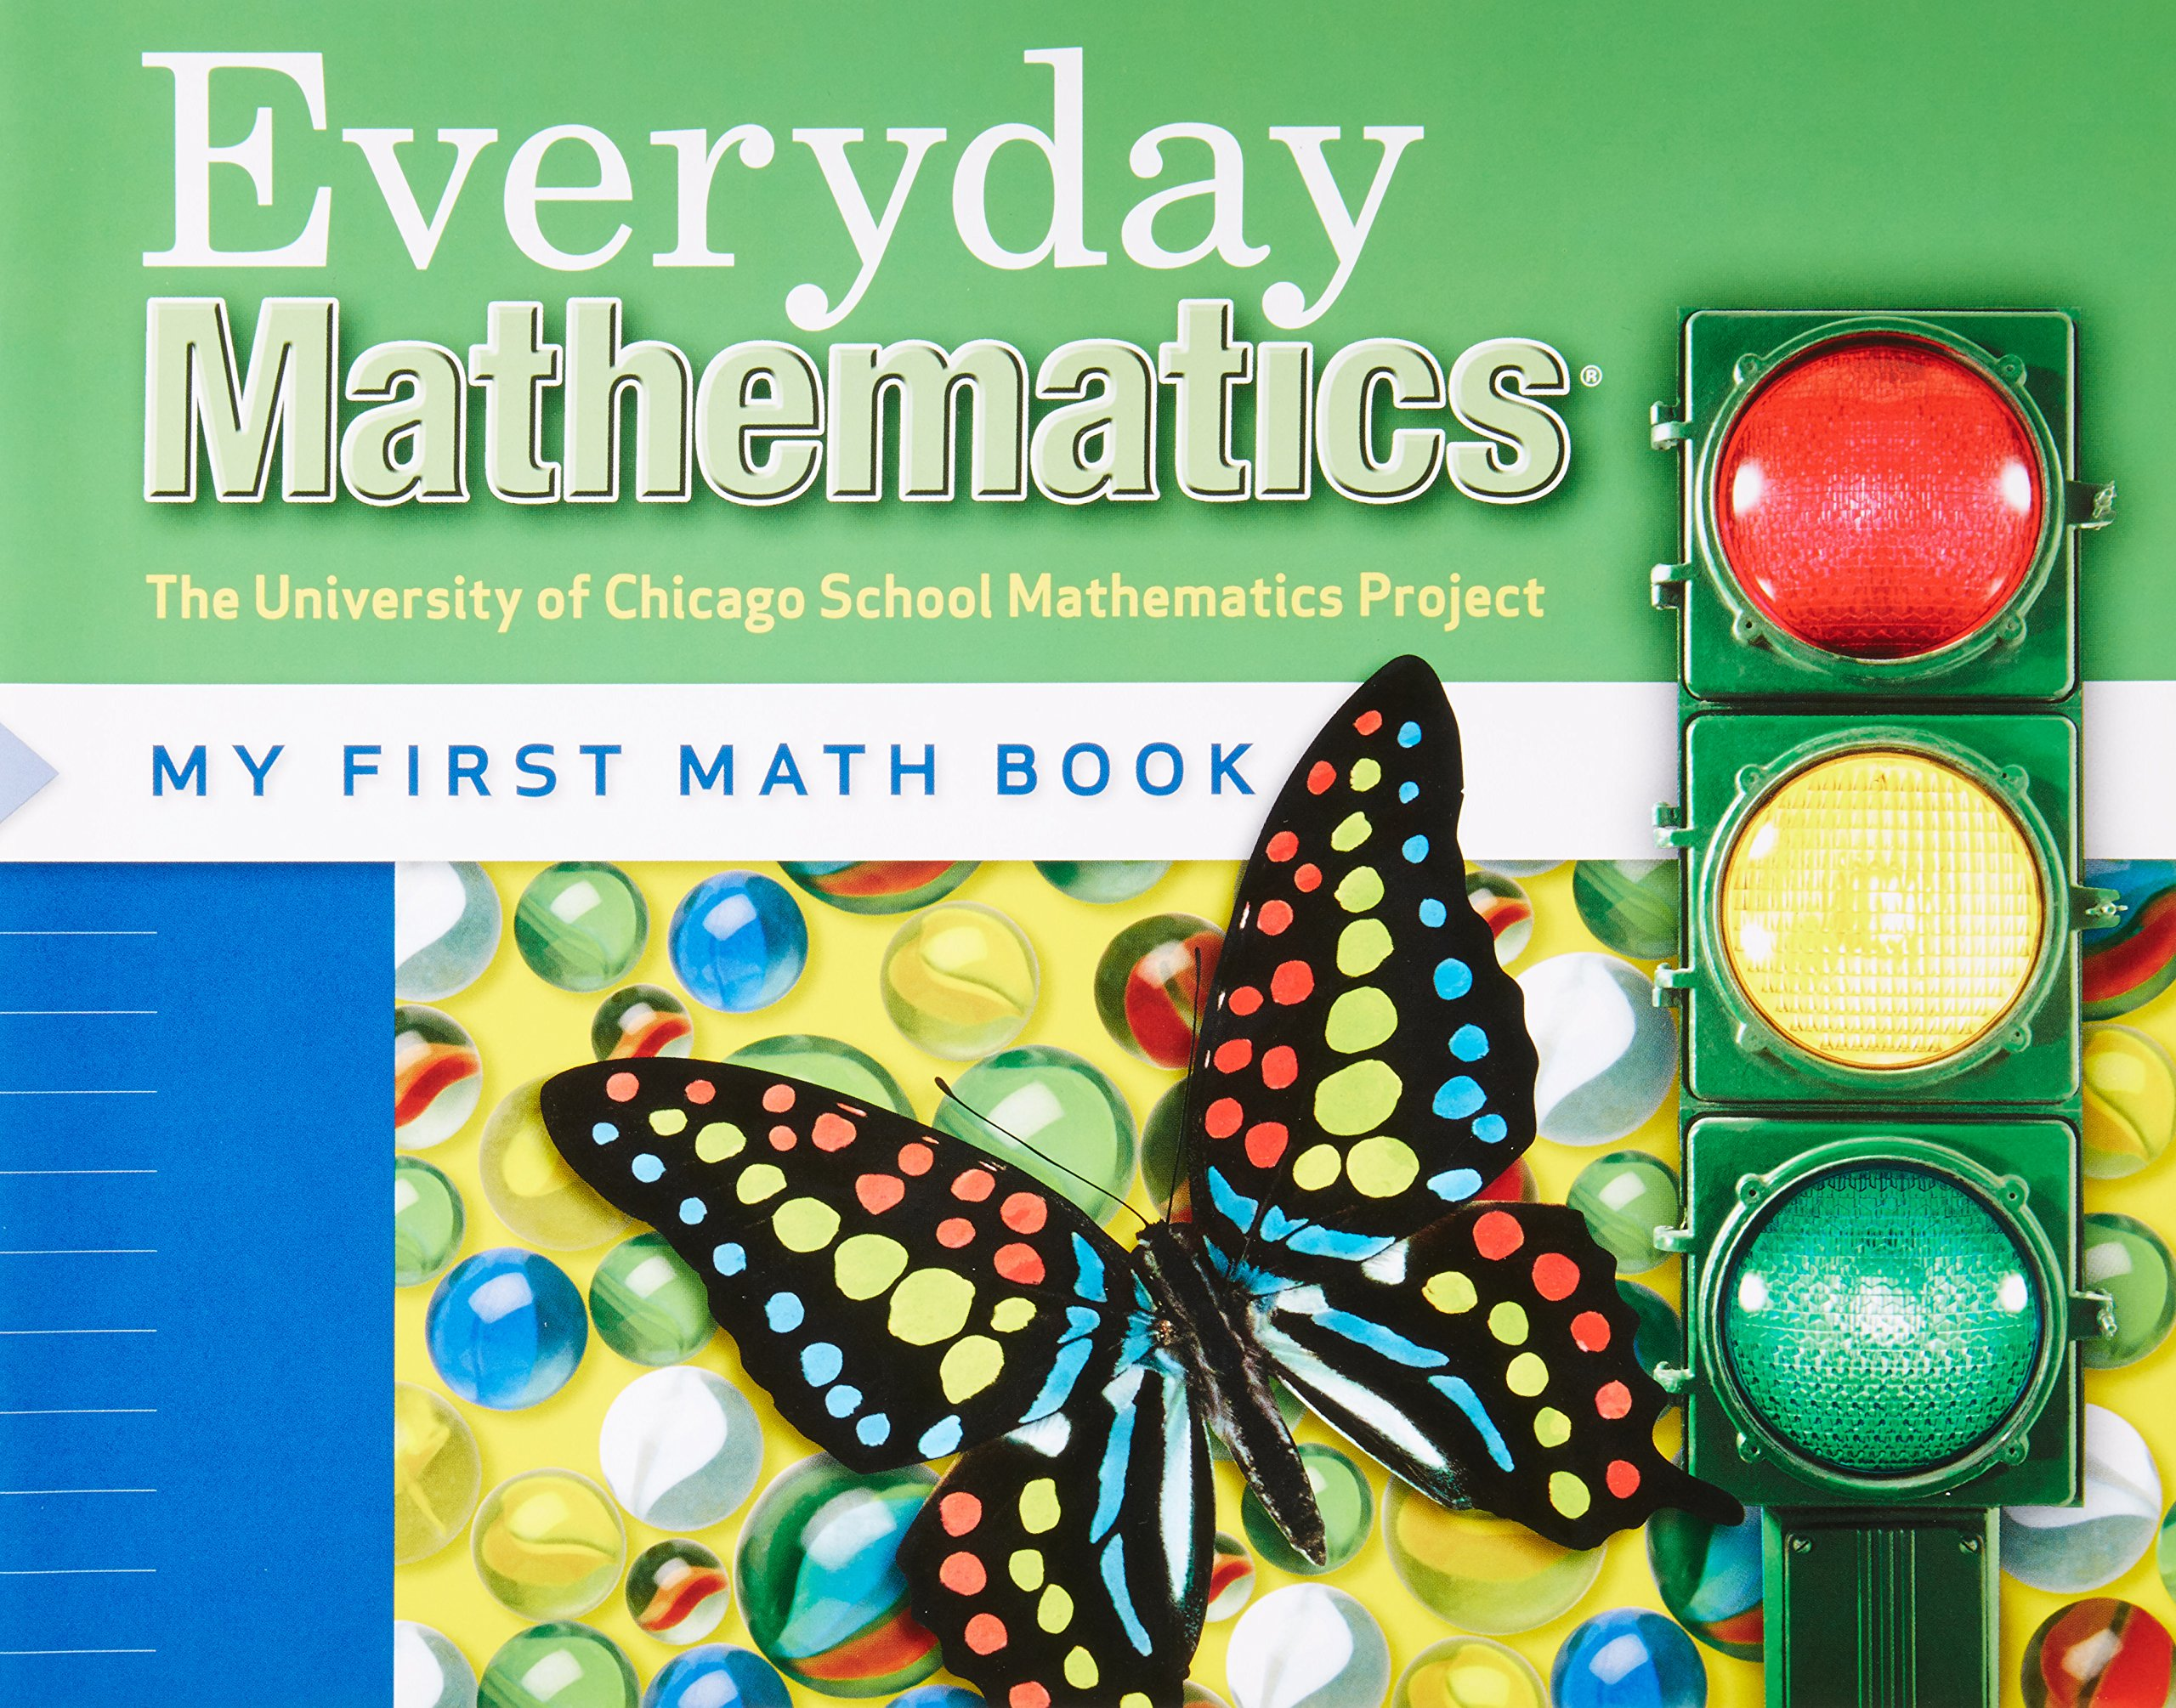 Worksheet Firstmath my first math book everyday mathematics wright group 9780076045242 amazon com books